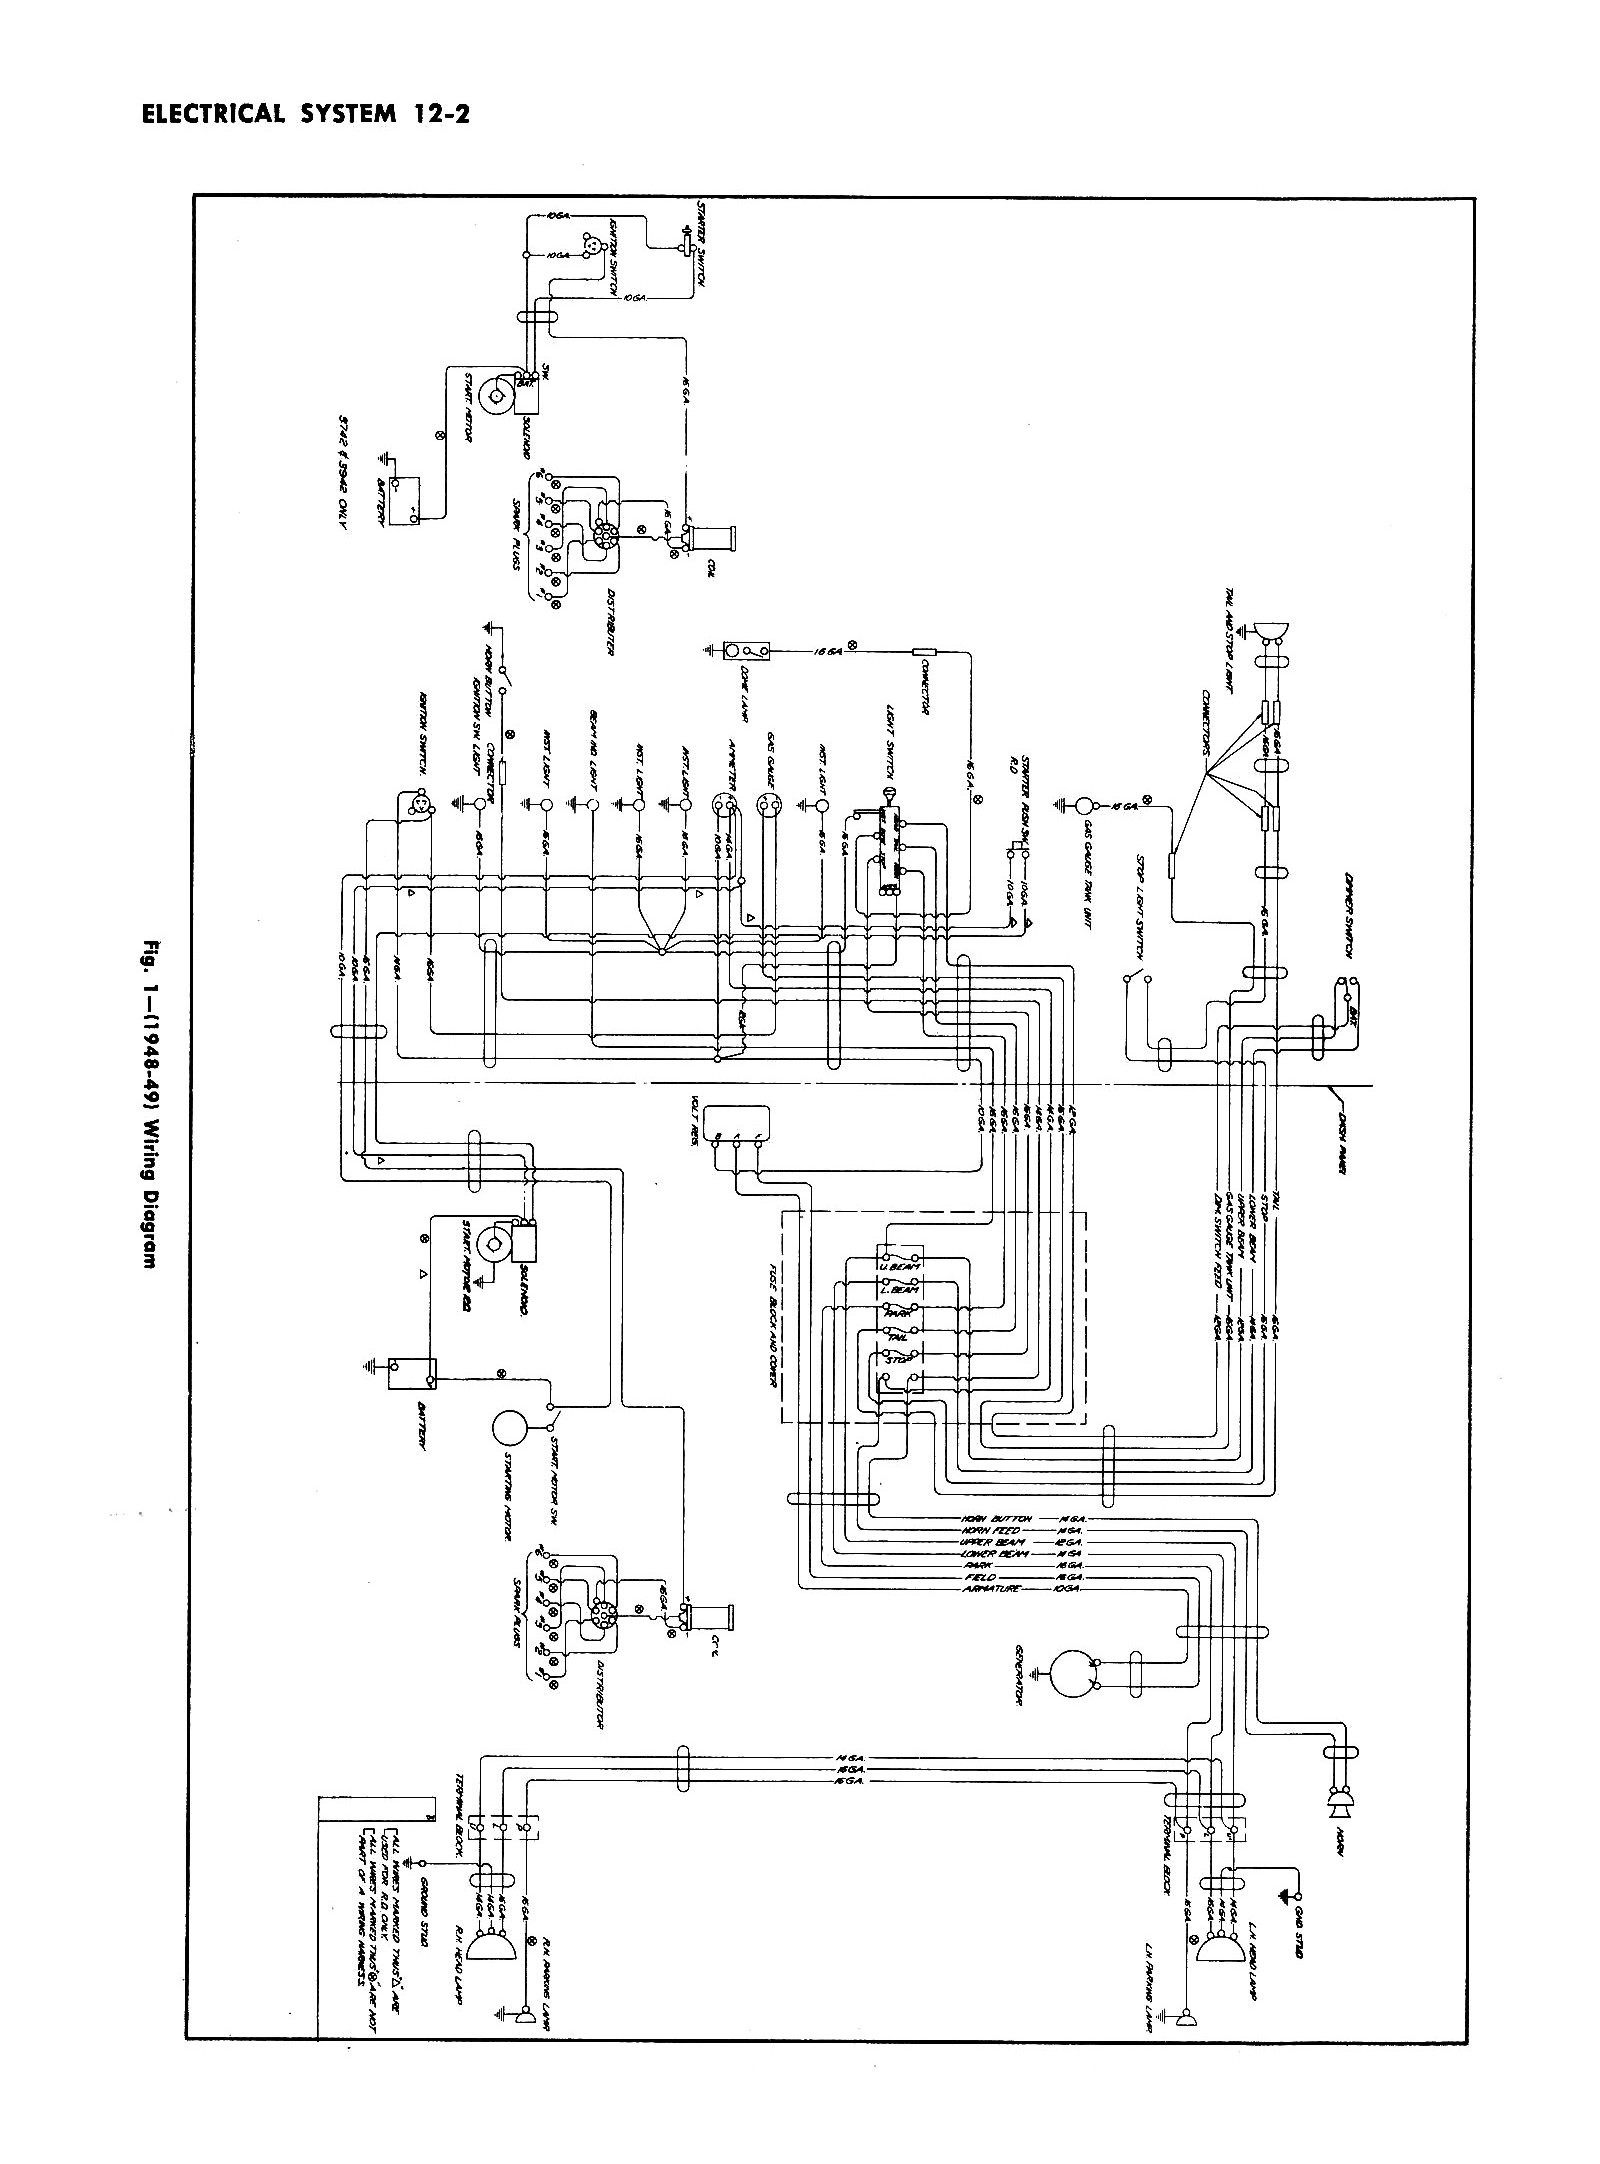 48car chevy wiring diagrams headlight switch wiring diagram chevy truck at crackthecode.co